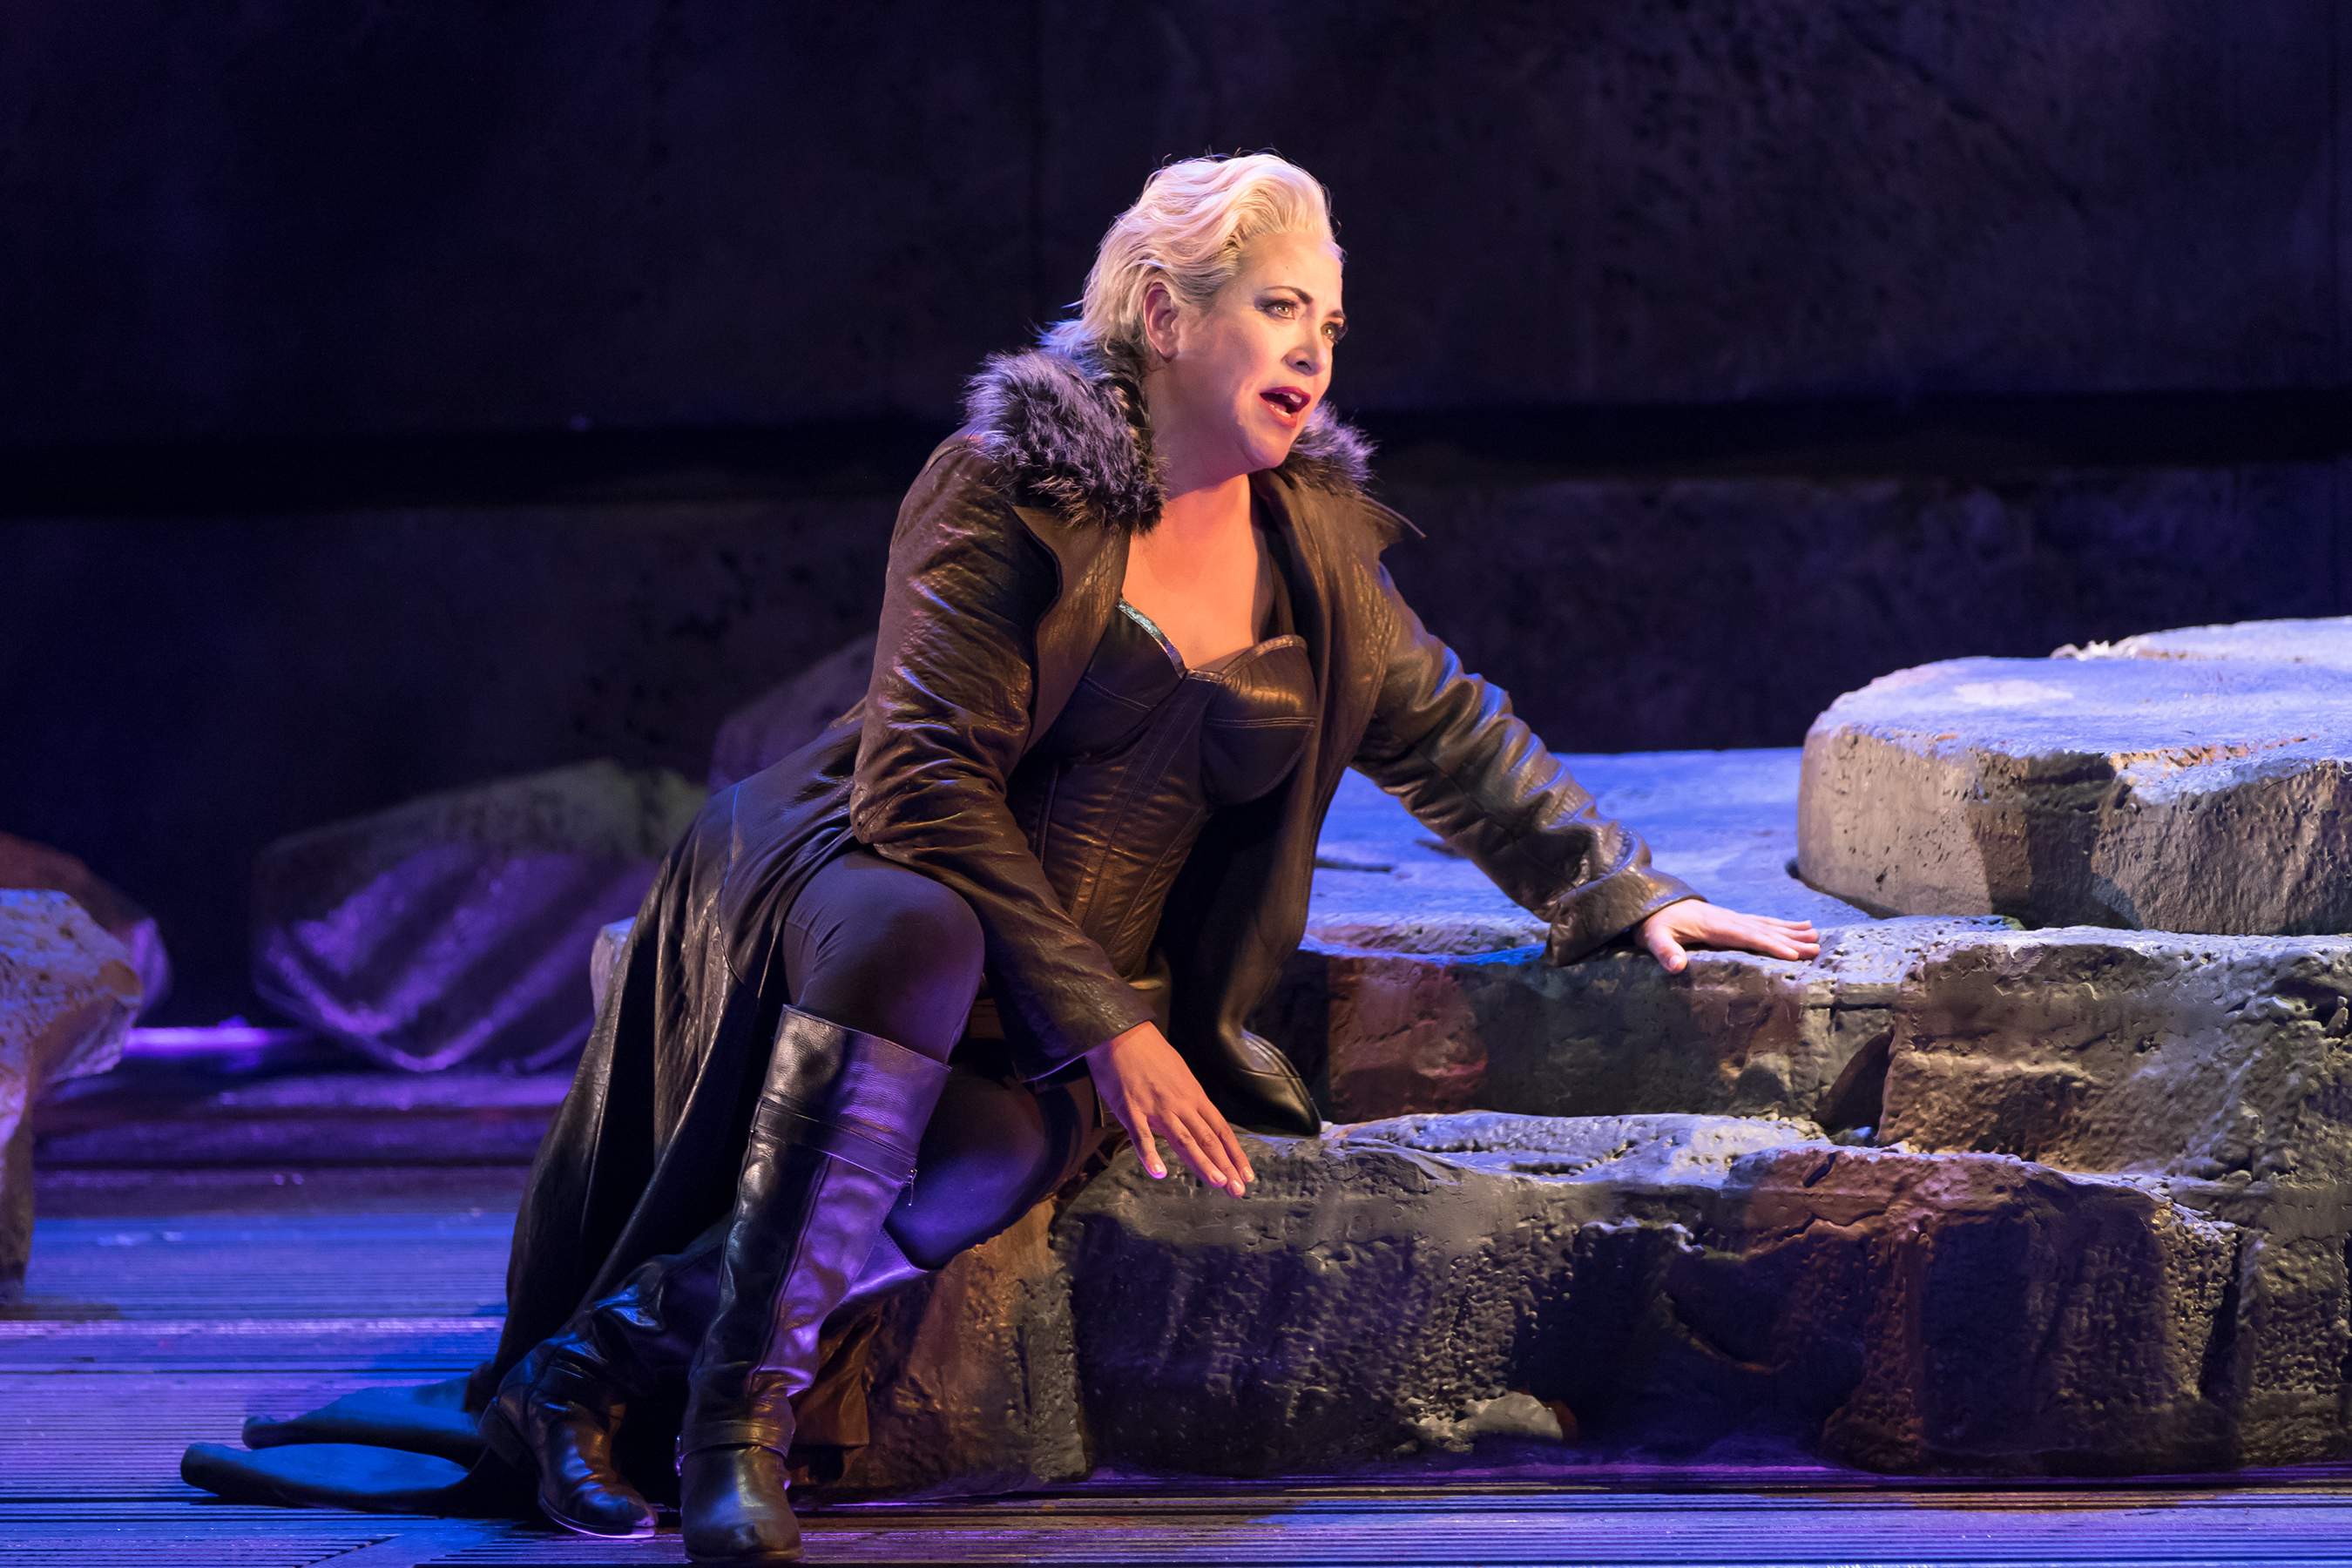 Lori Phillips as Brünnhilde in <i>Siegfried</i>